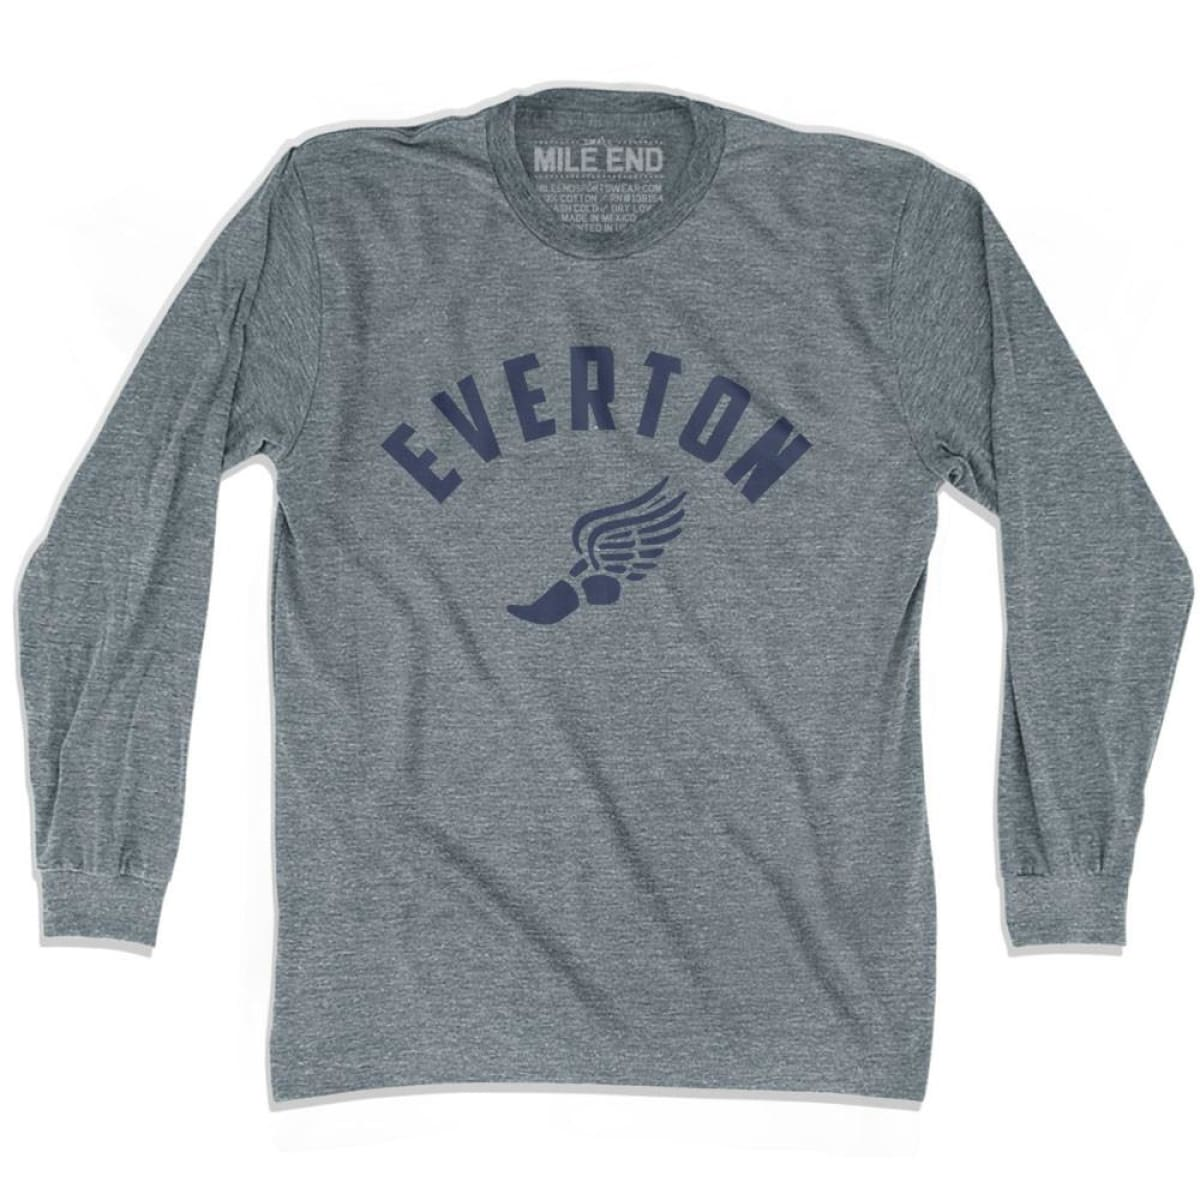 Everton Track Long Sleeve T-shirt - Athletic Grey / Adult X-Small - Mile End Track